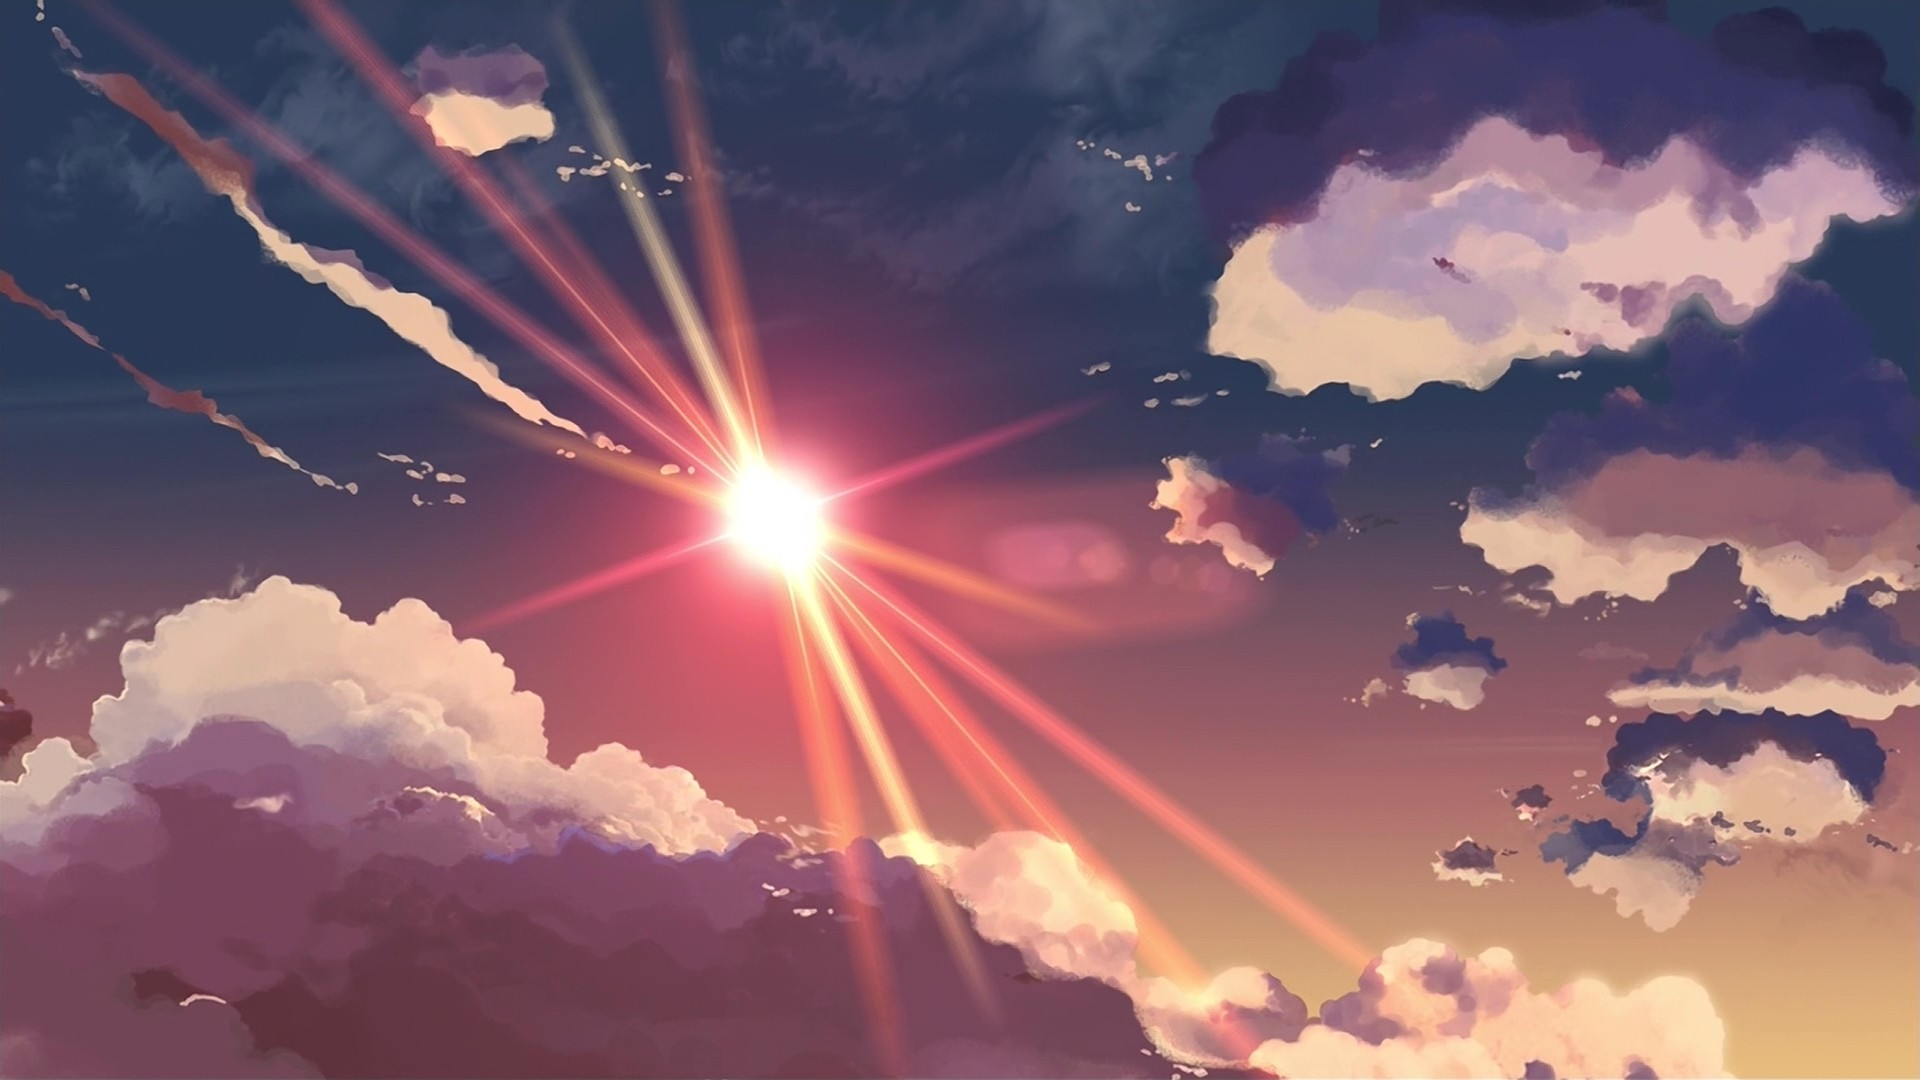 Anime Clouds Wallpaper image hd